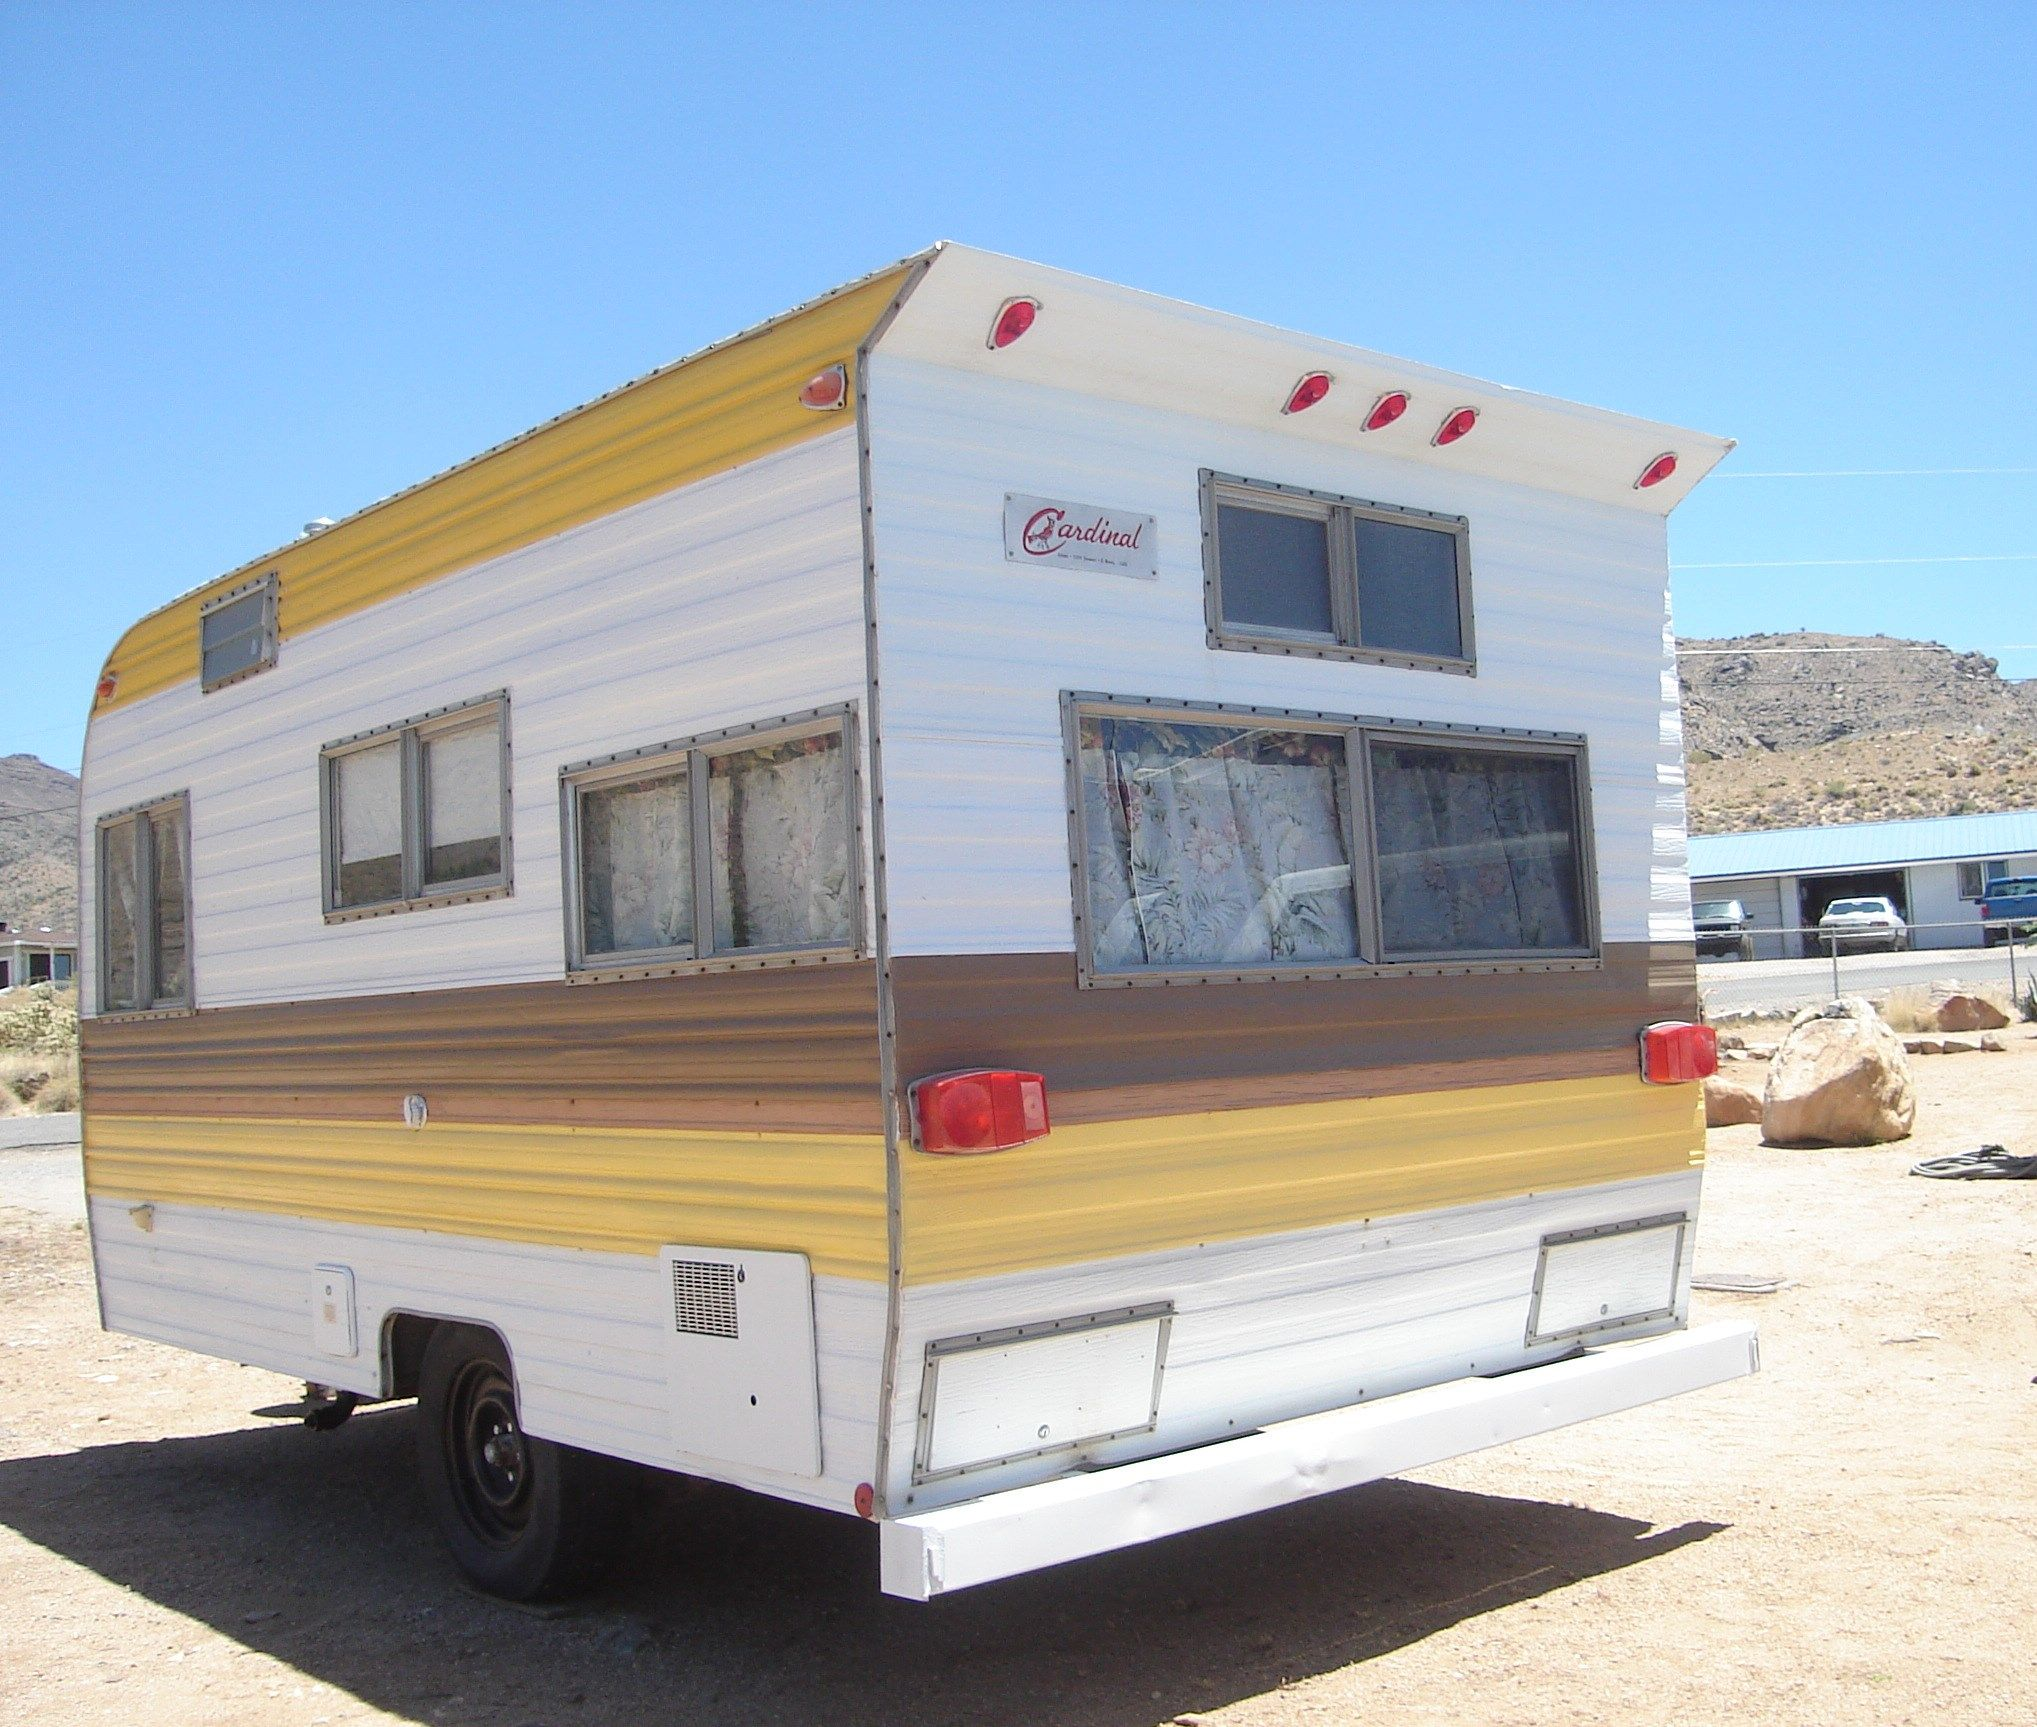 1975 Cardinal Travel Trailerthe After Pic Of The Trailer Cheryl